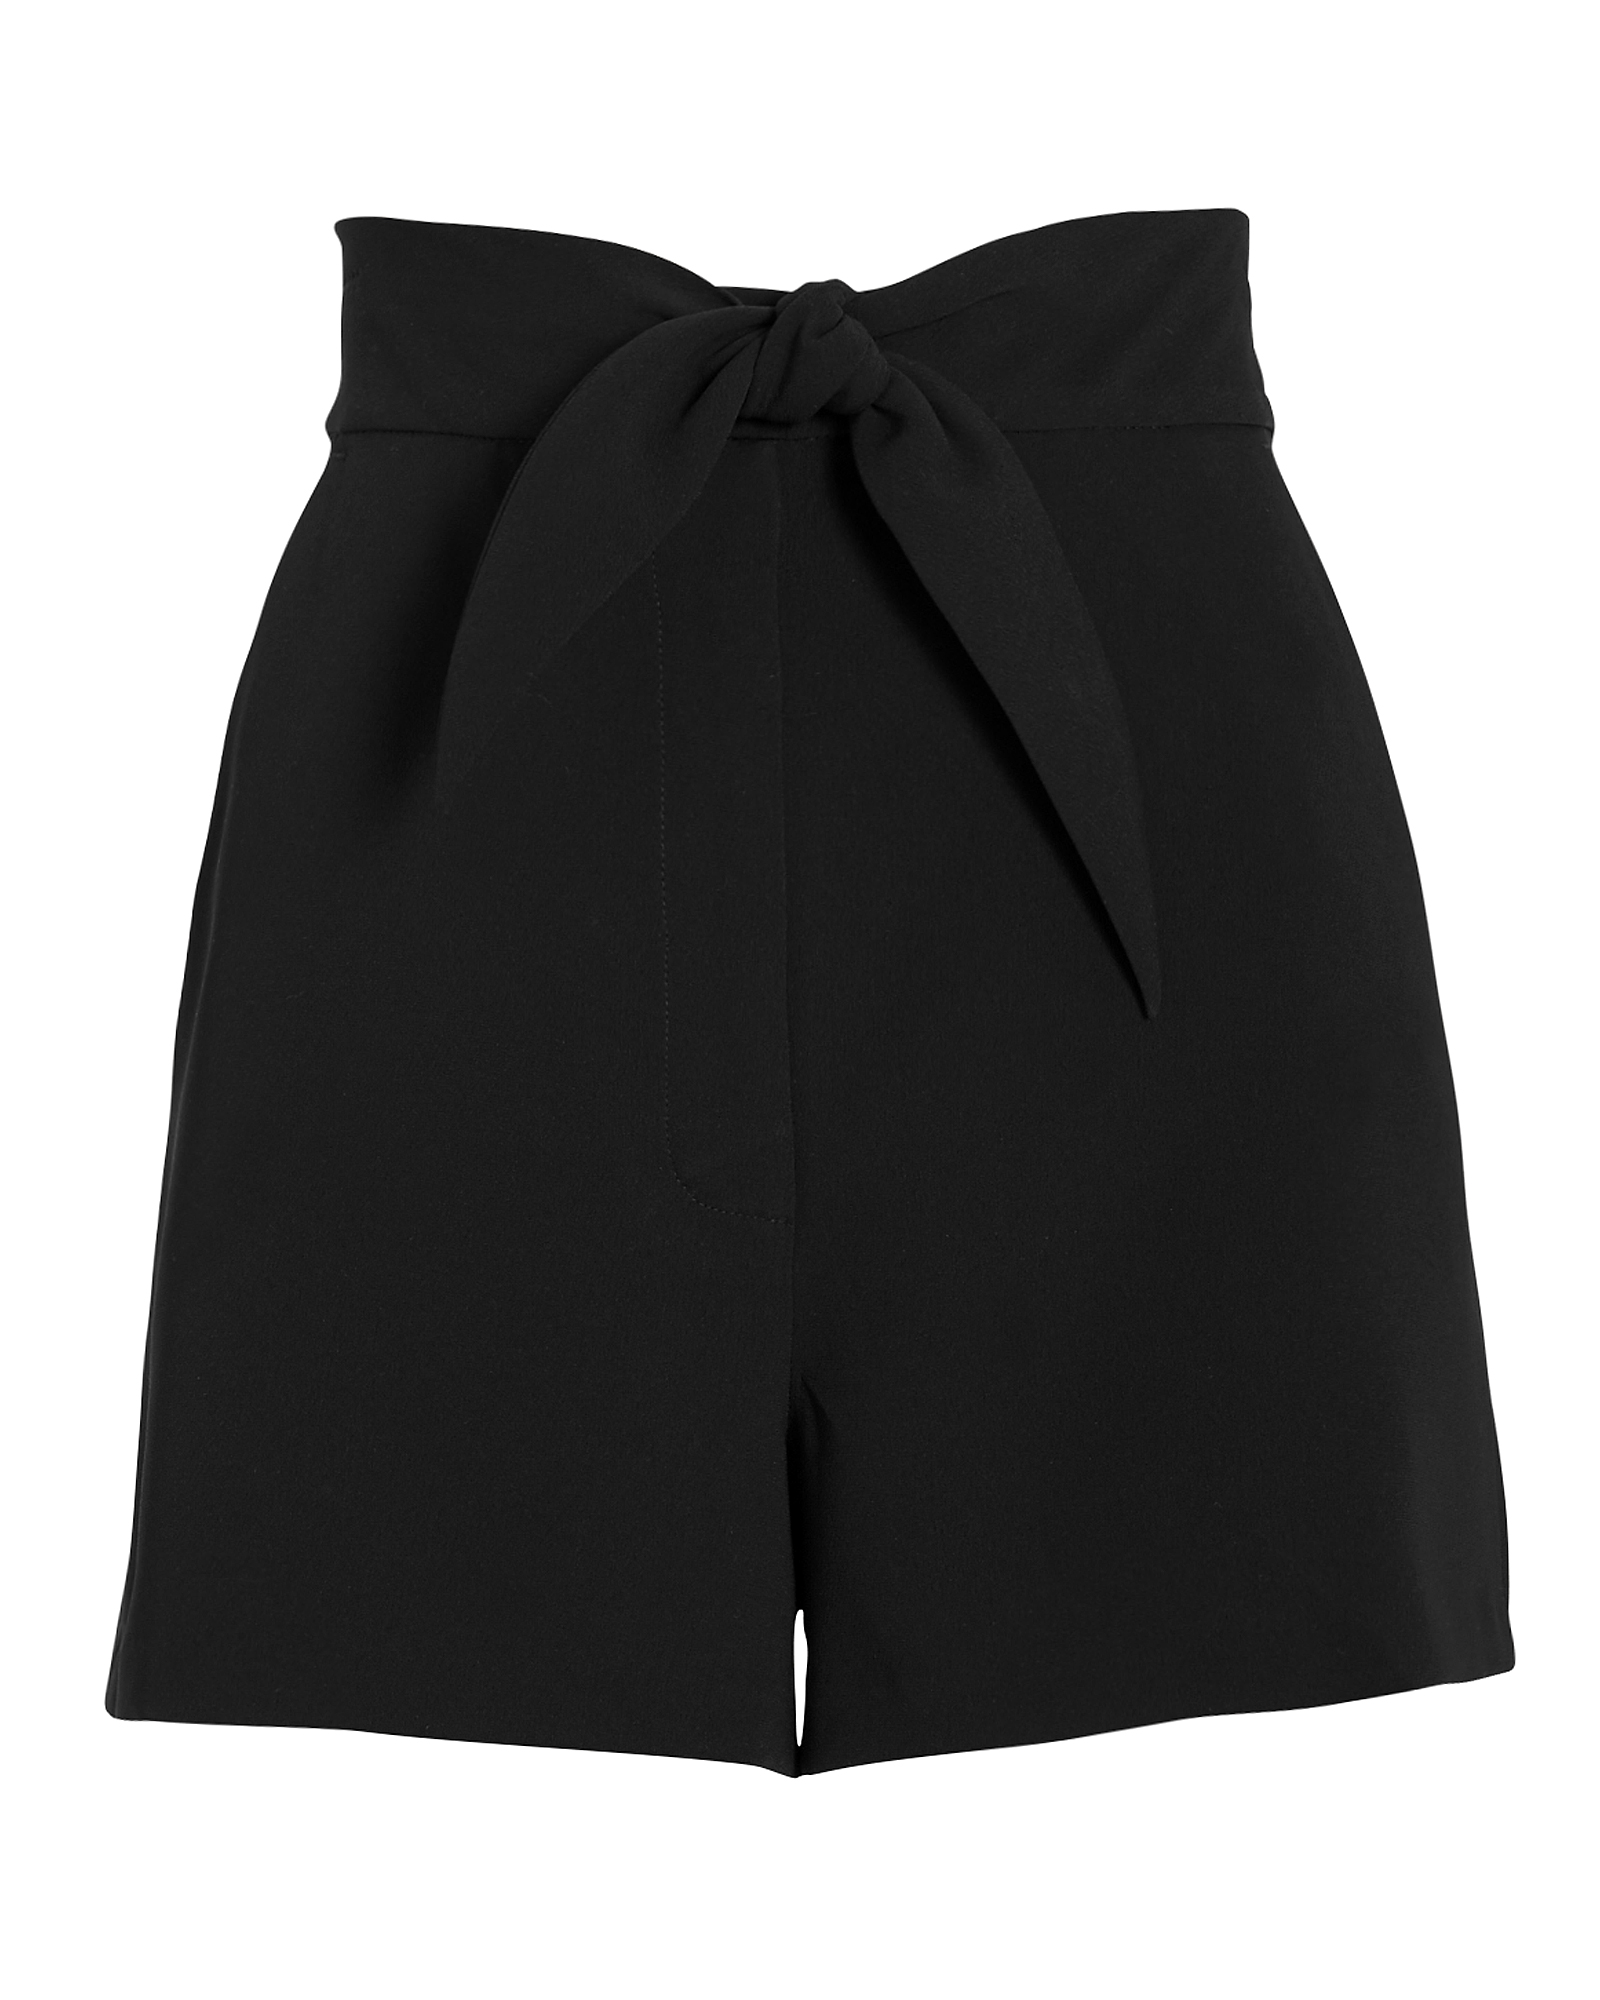 A.l.c Shorts A.L.C. KERRY BOW SHORTS  BLACK 4